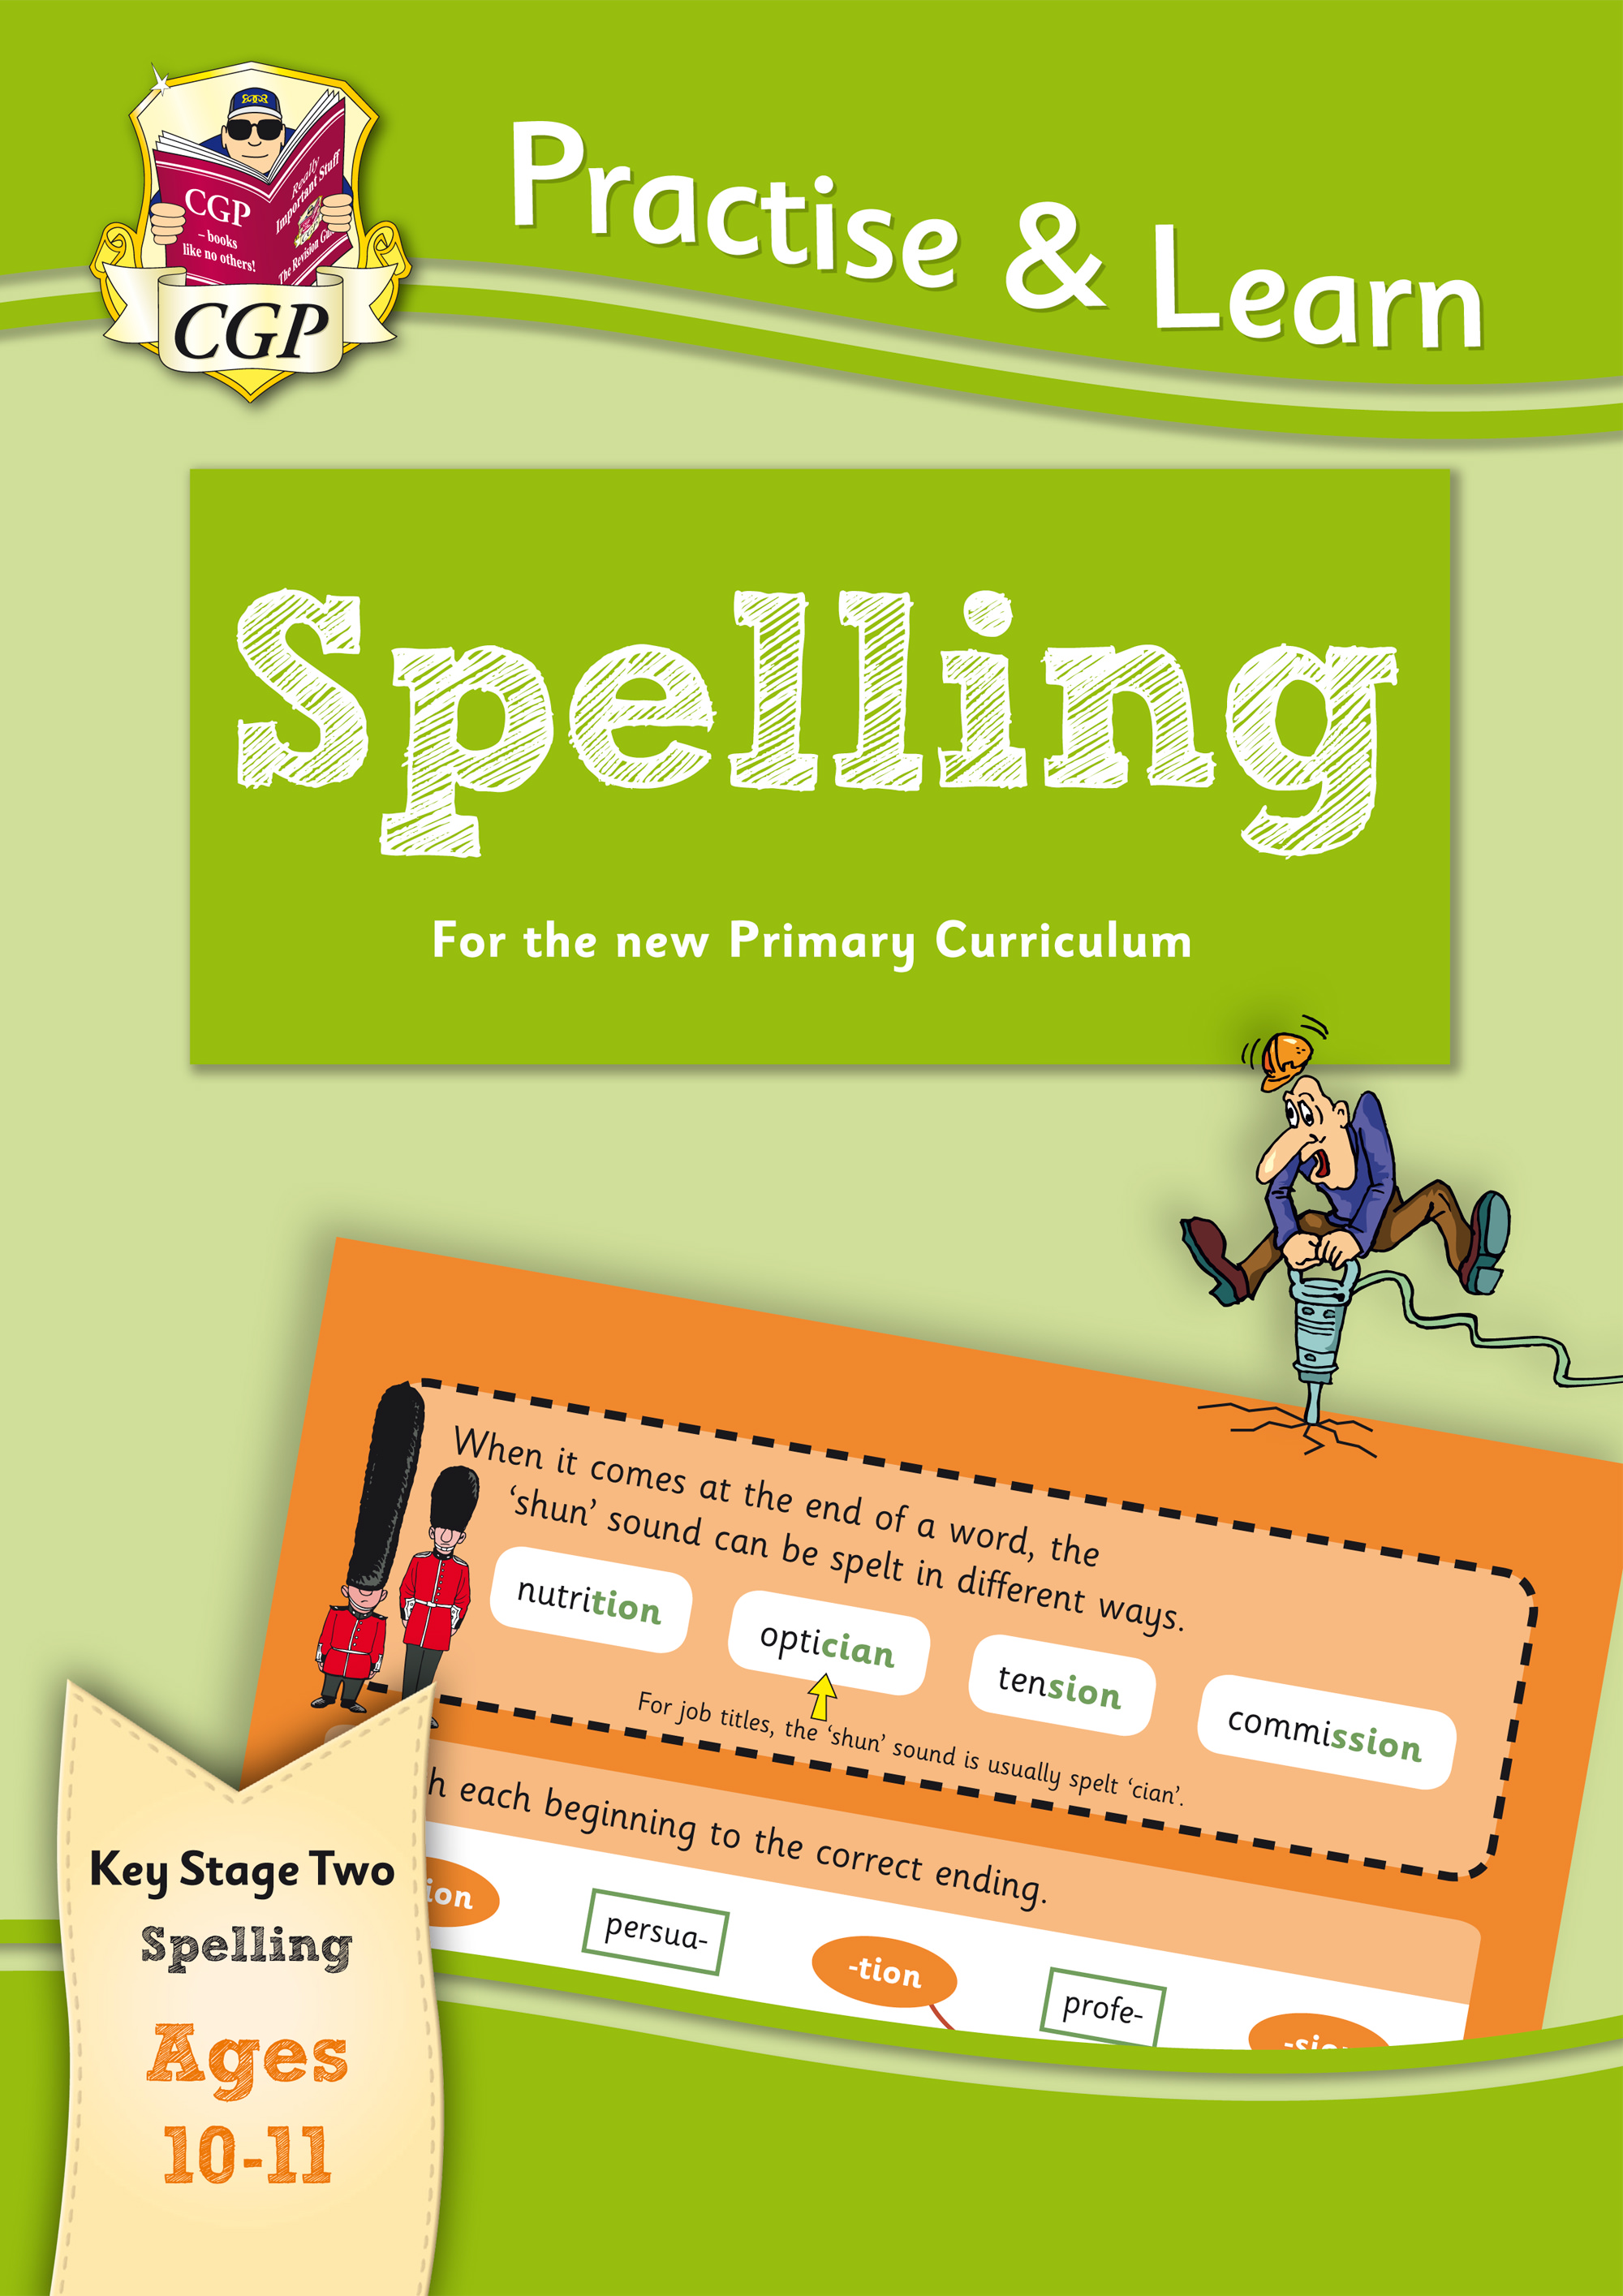 EP6S22 - New Practise & Learn: Spelling for Ages 10-11